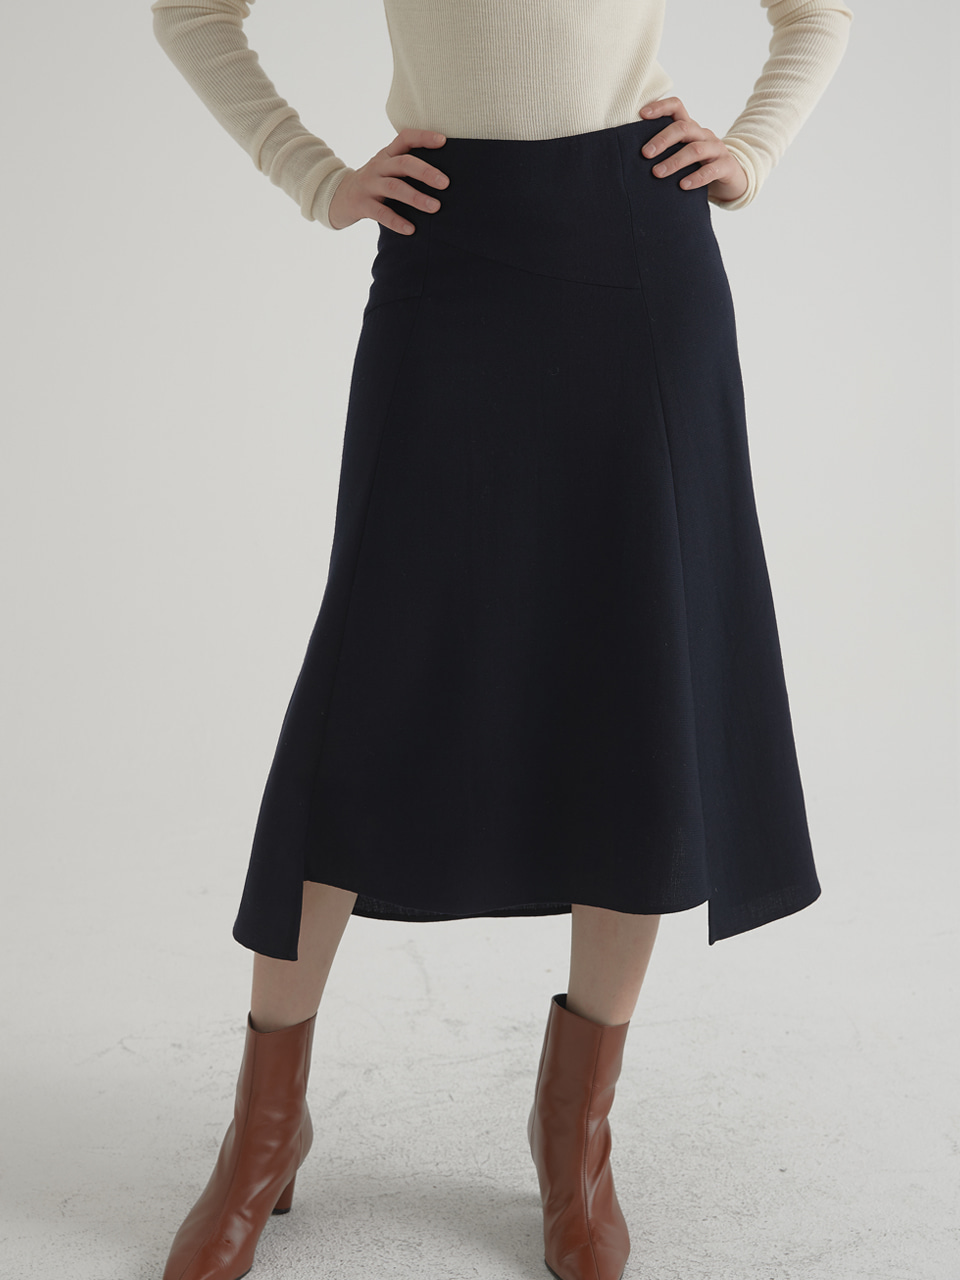 Unbalance mermaid skirt - Navy